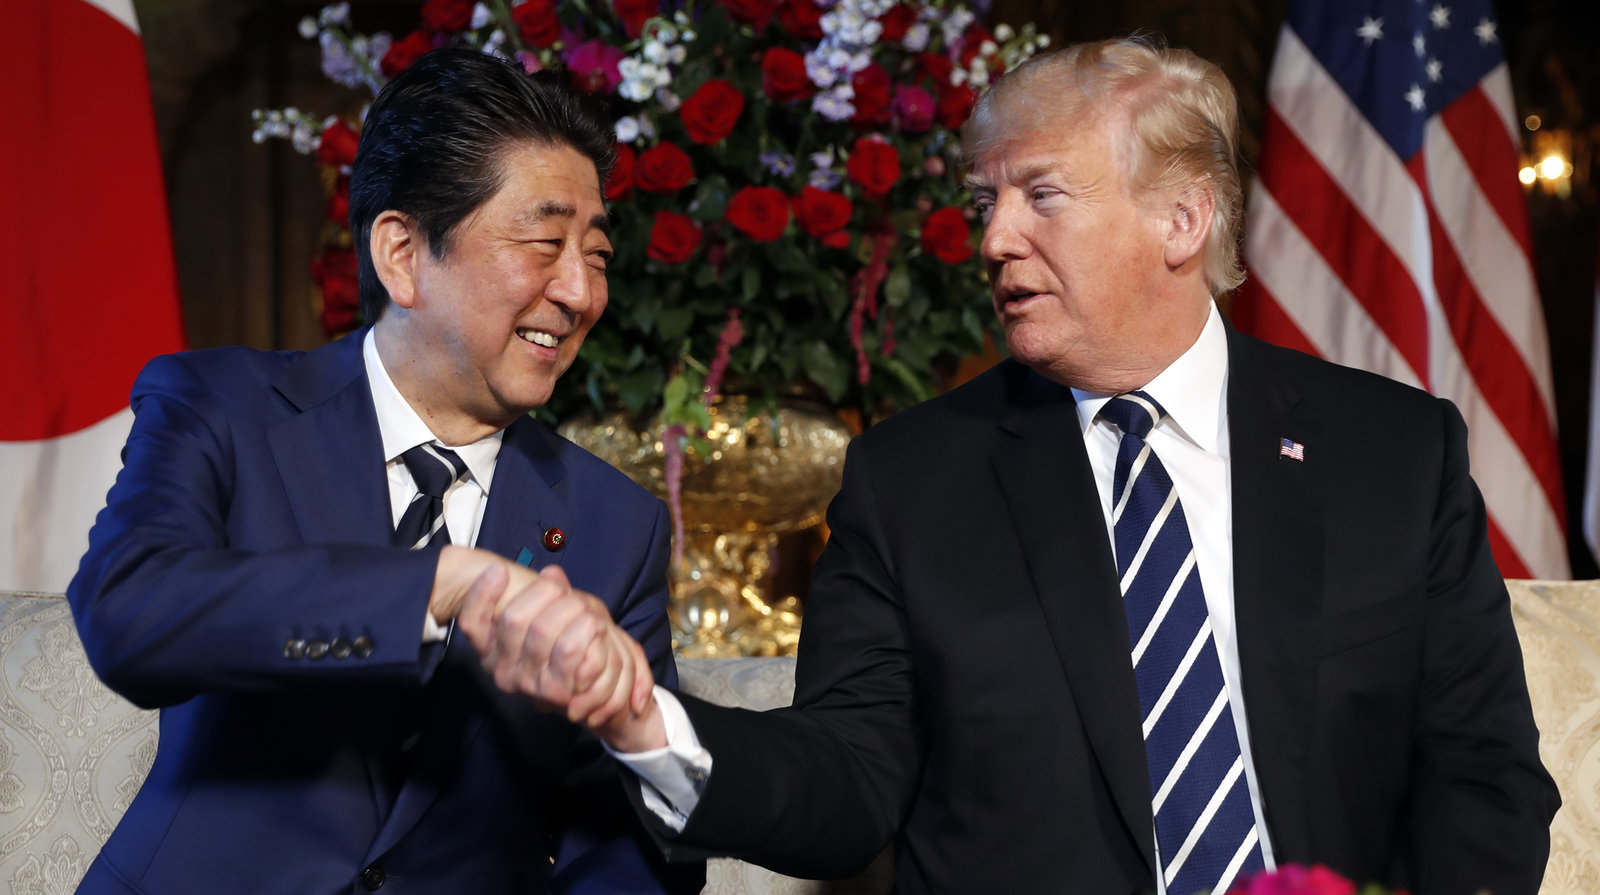 Trump & Japanese PM Shinzo Abe wearing matching blue & white striped ties, shaking hands, sitting on couch